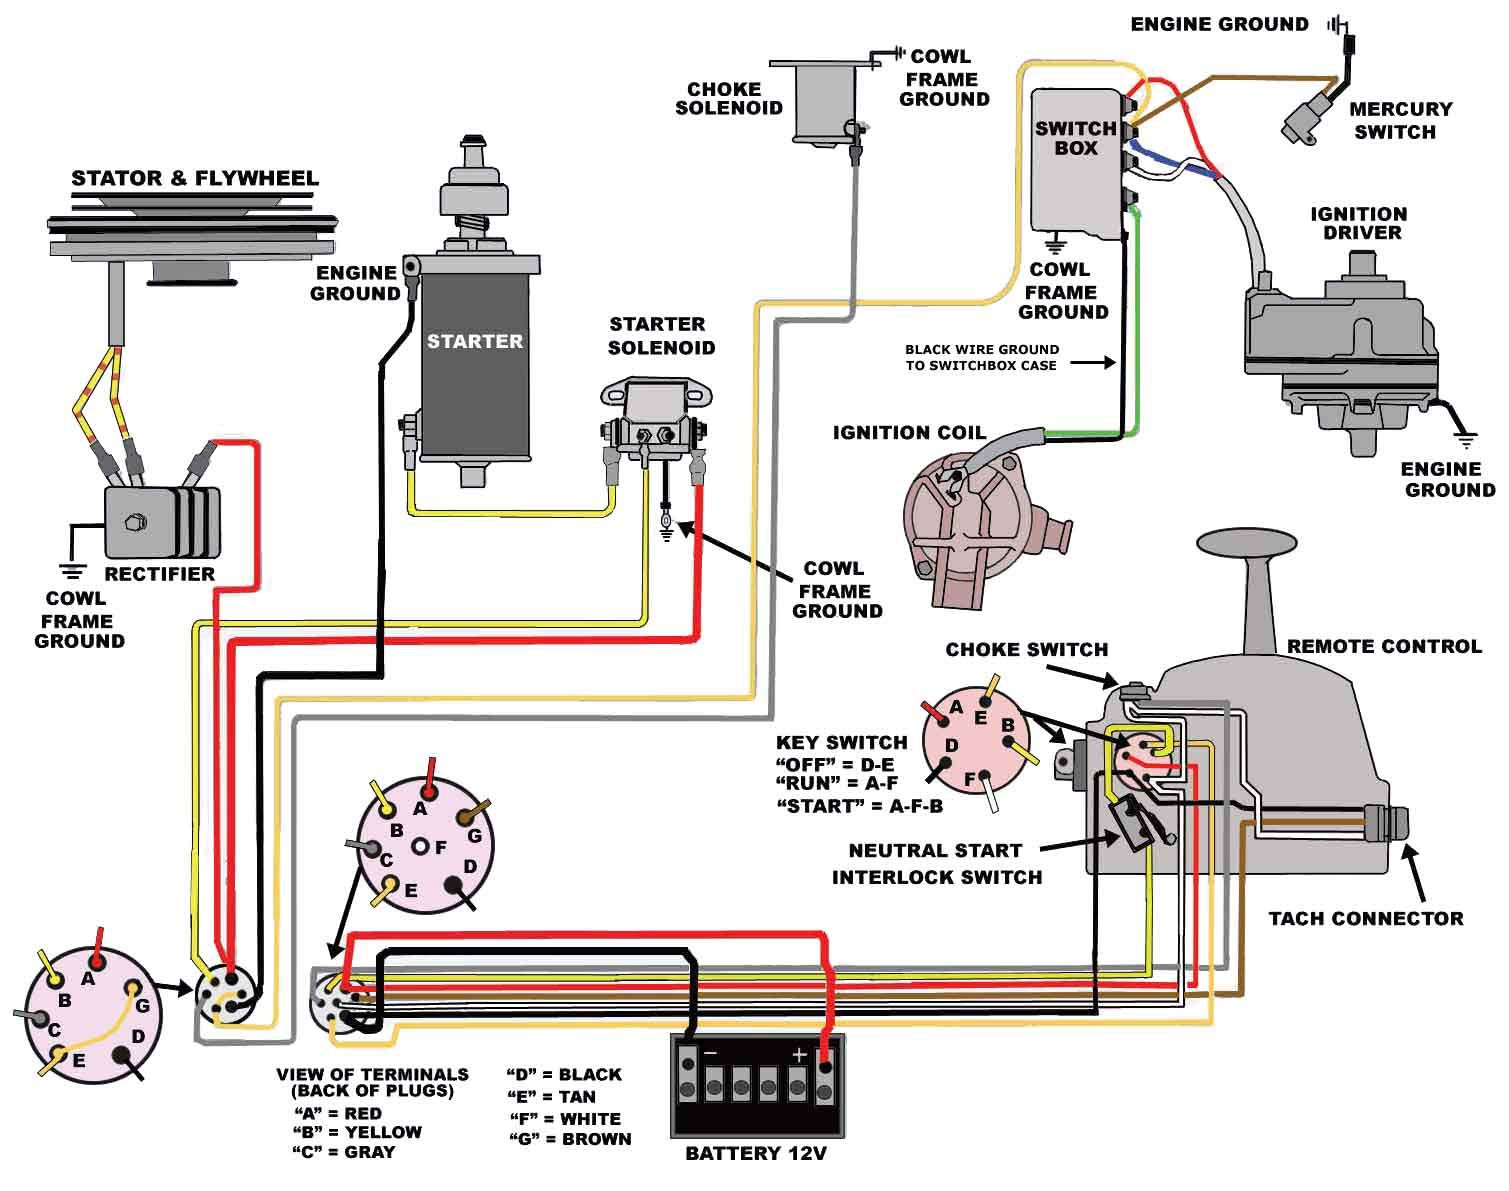 small resolution of mercury wiring diagram wiring diagram blogs rh 4 11 2 restaurant freinsheimer hof de mercury force 40 hp wiring diagram mercury 40 hp 4 stroke wiring